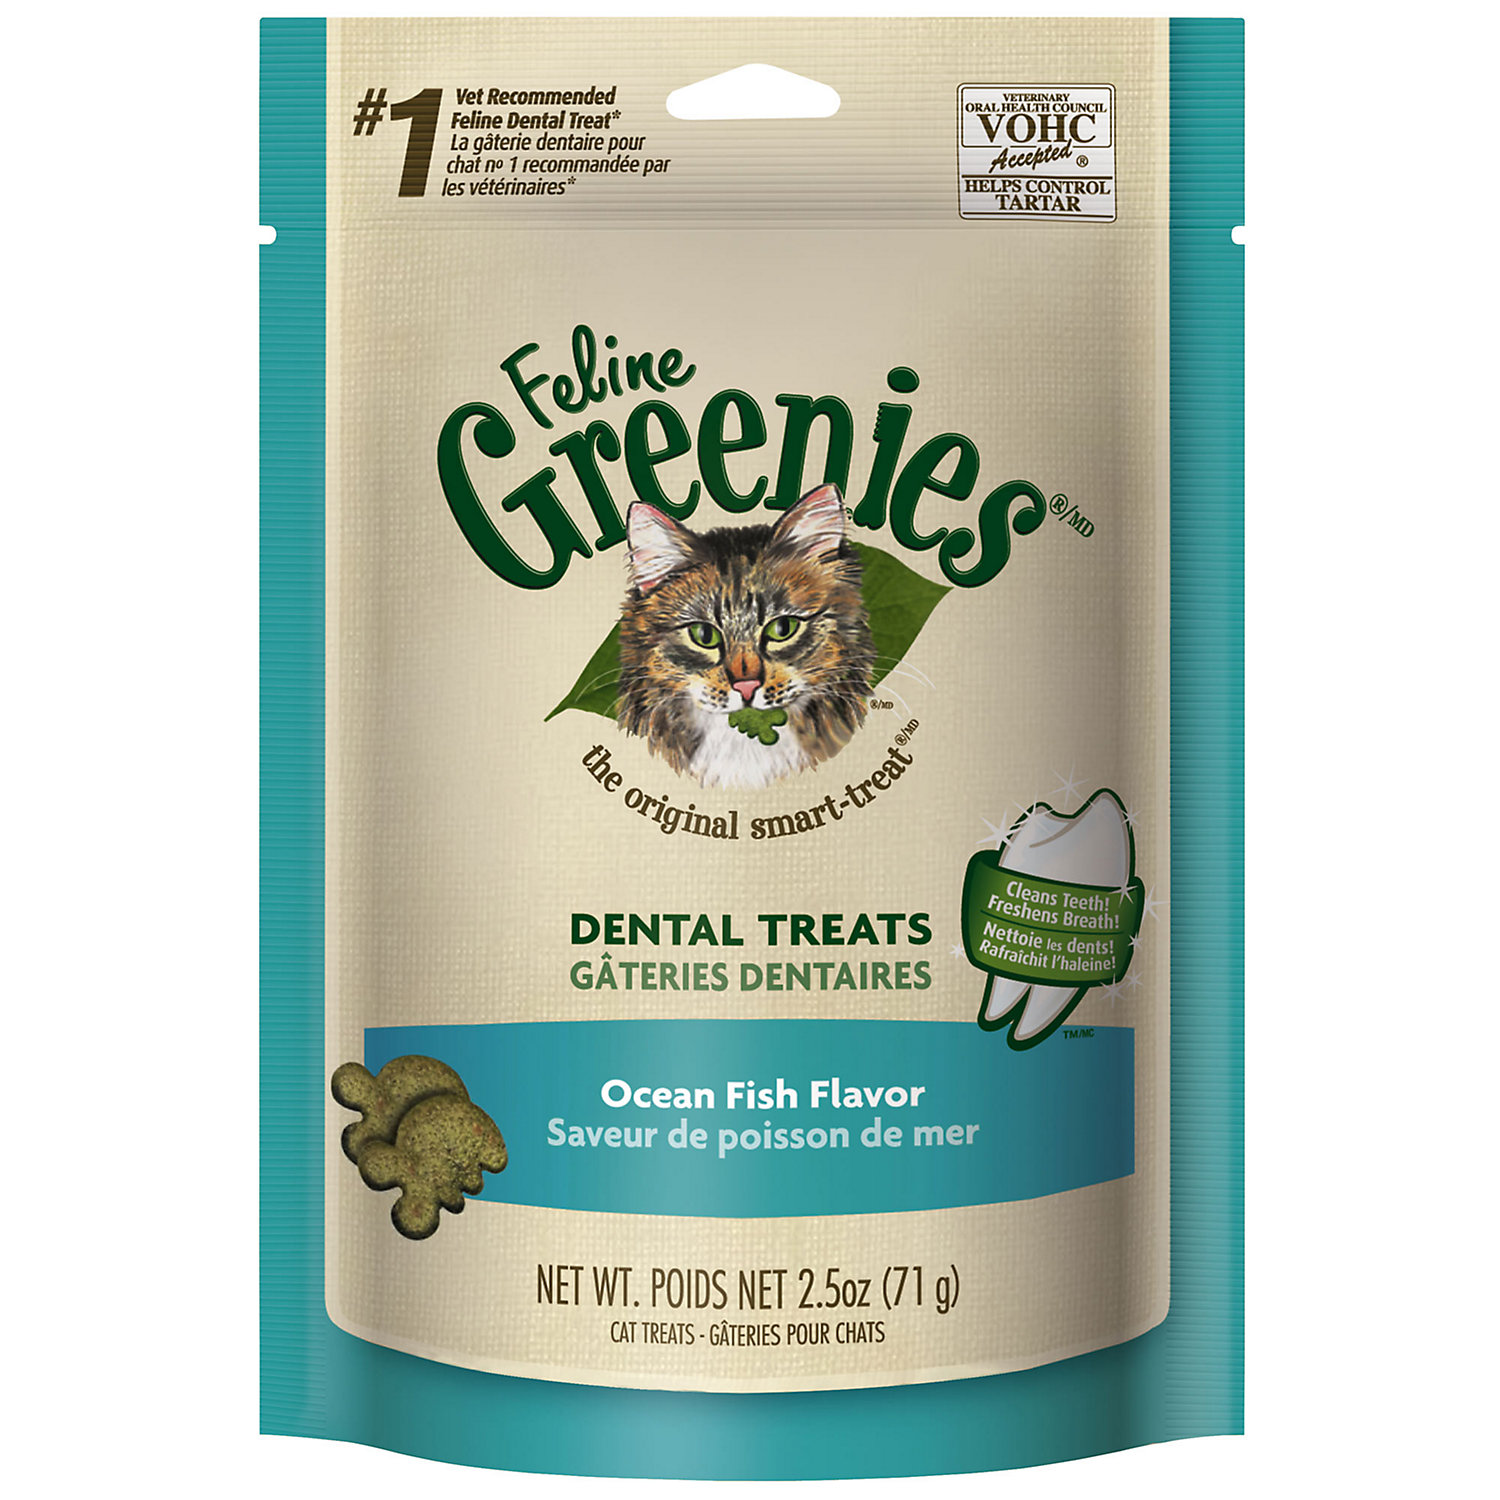 Feline Greenies Ocean Fish Flavor 2.5 Oz.